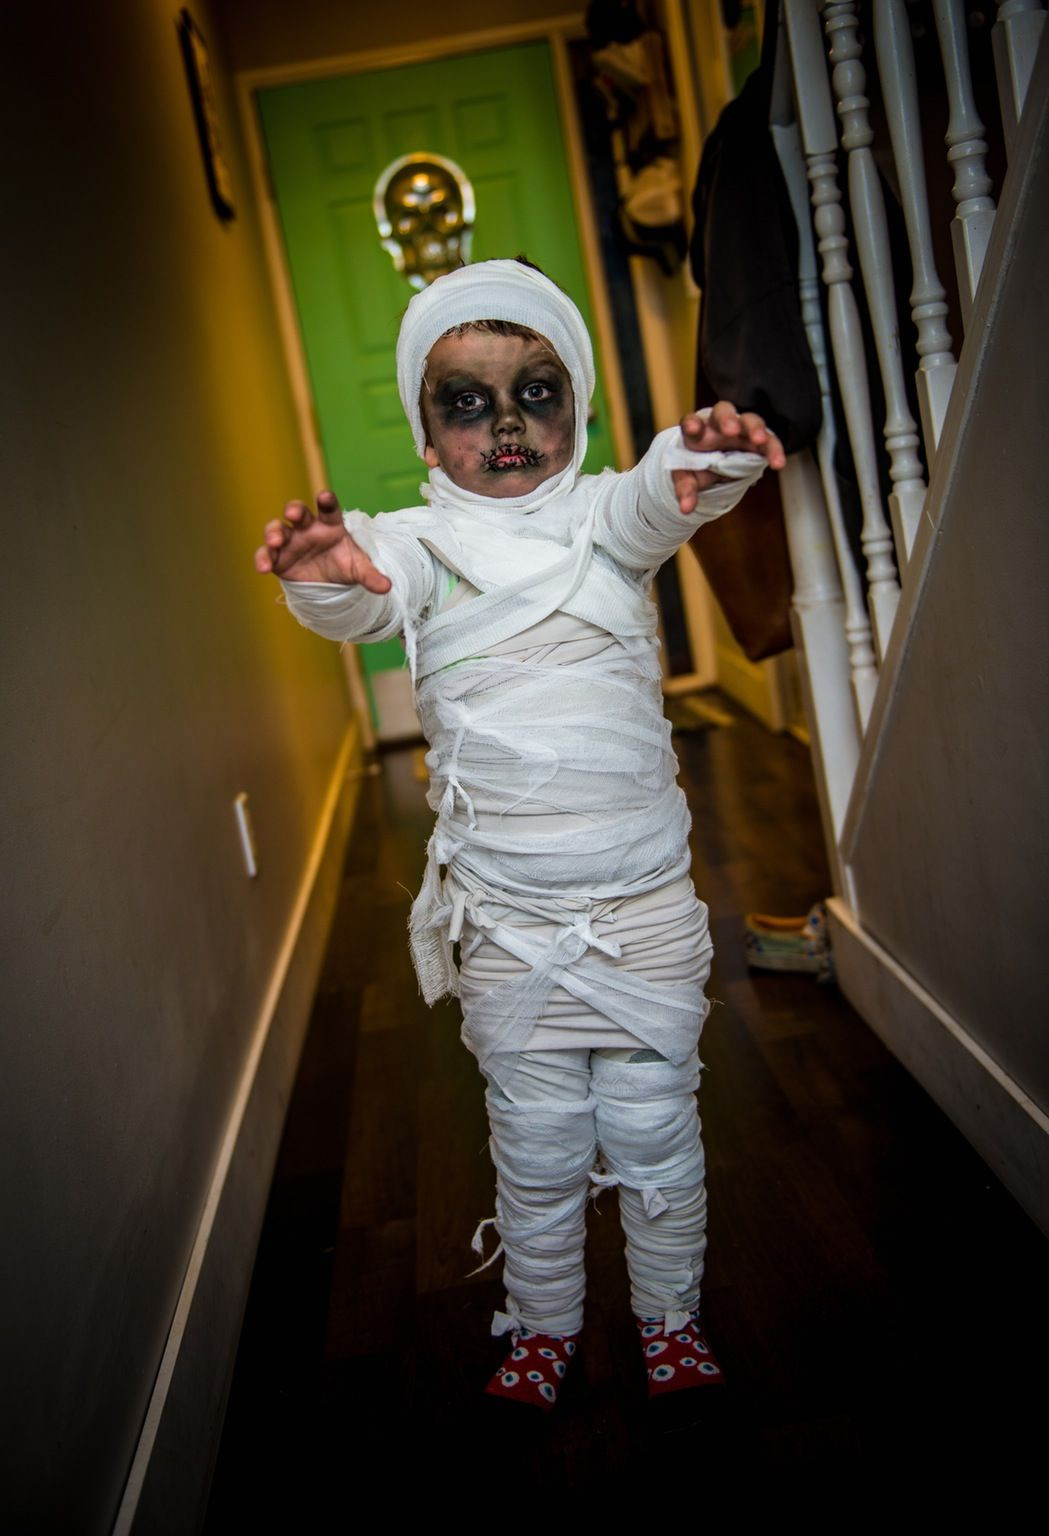 3 Year Old Mummy Halloween Costume And Makeup For Kids